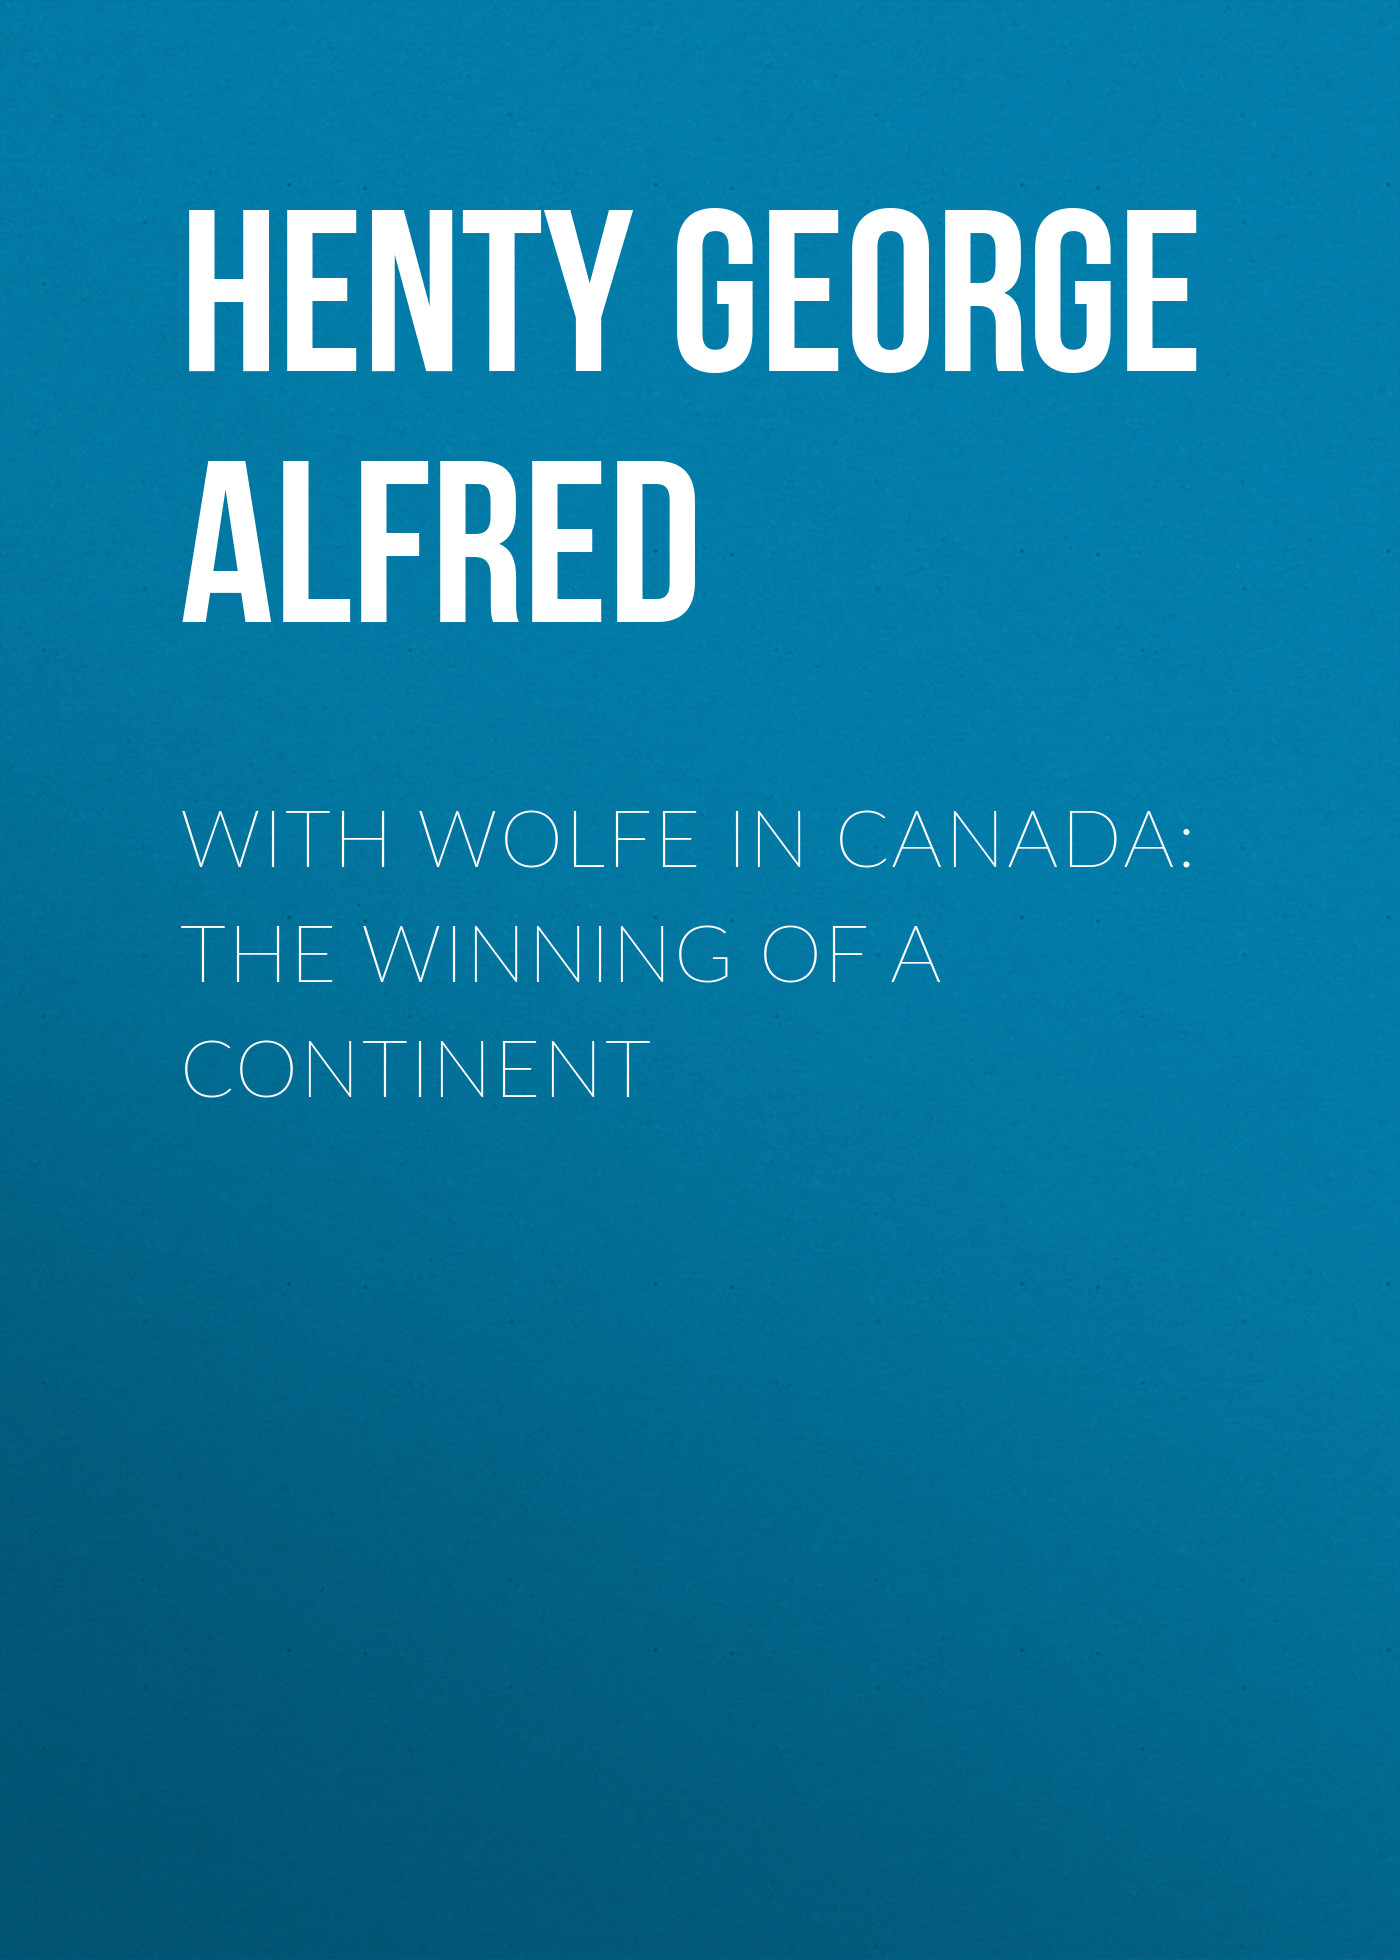 Henty George Alfred With Wolfe in Canada: The Winning of a Continent george alfred henty with lee in virginia a story of the american civil war